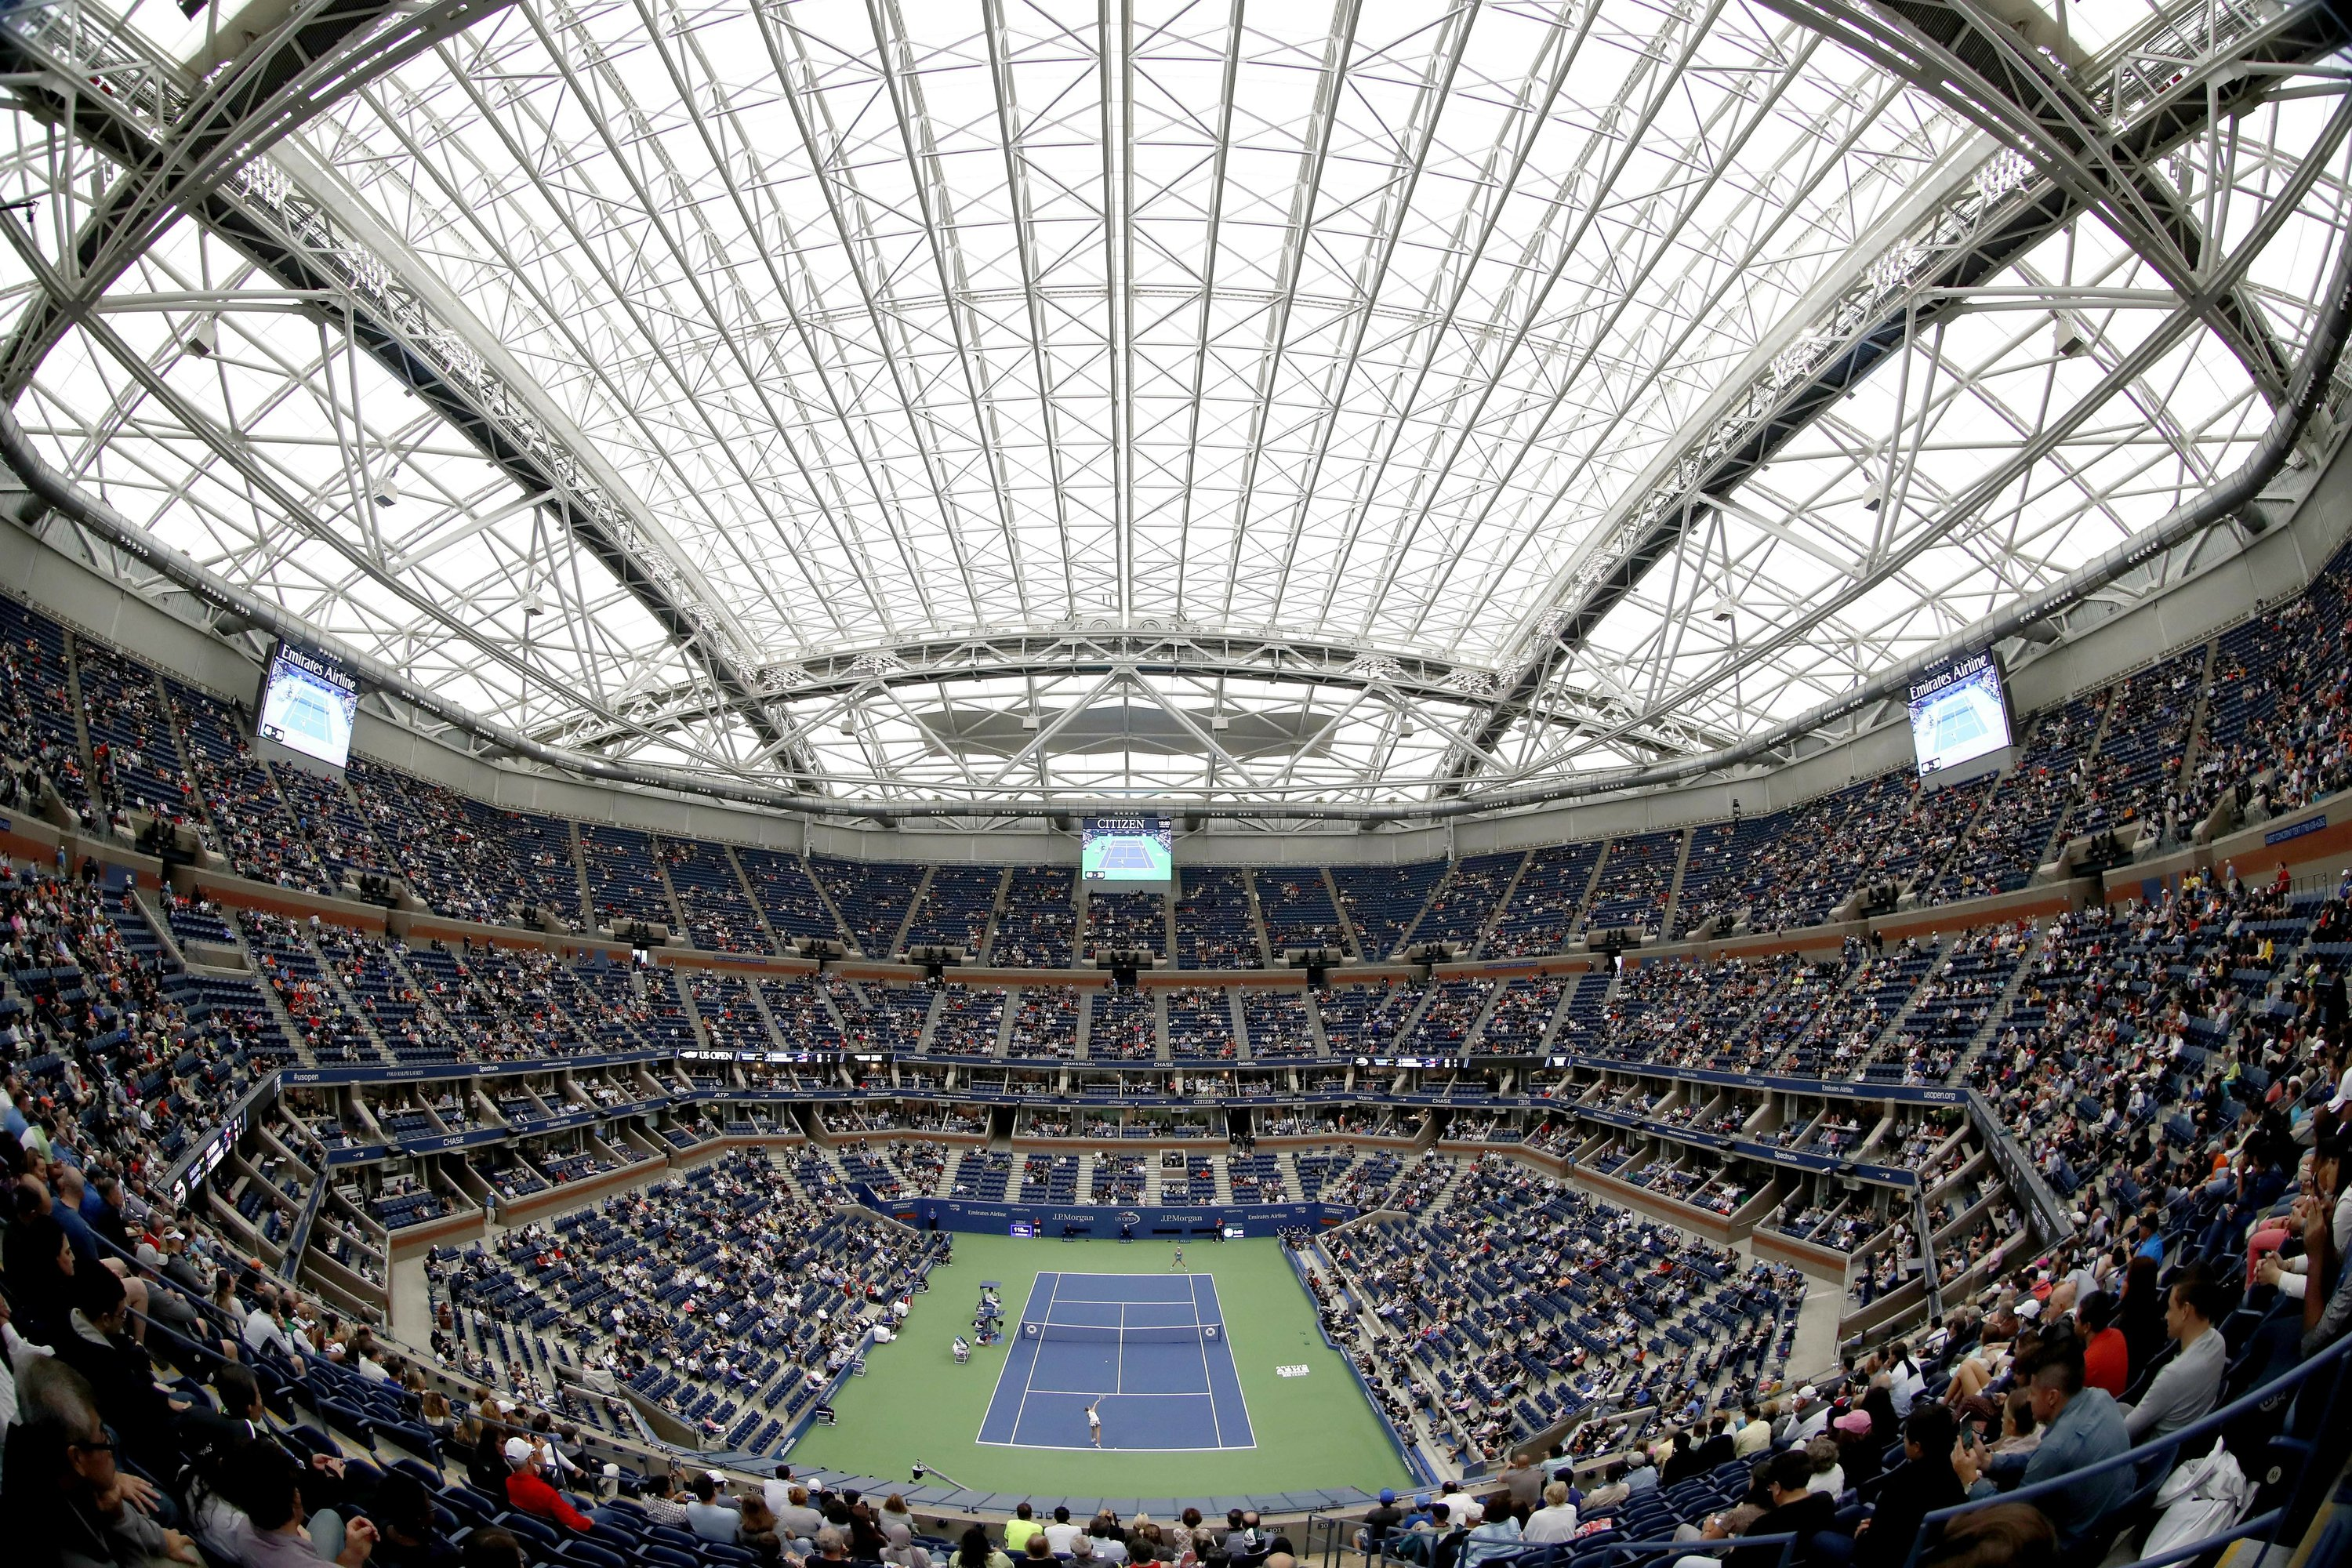 Behind the shadowy practice of 'courtsiding' at the US Open